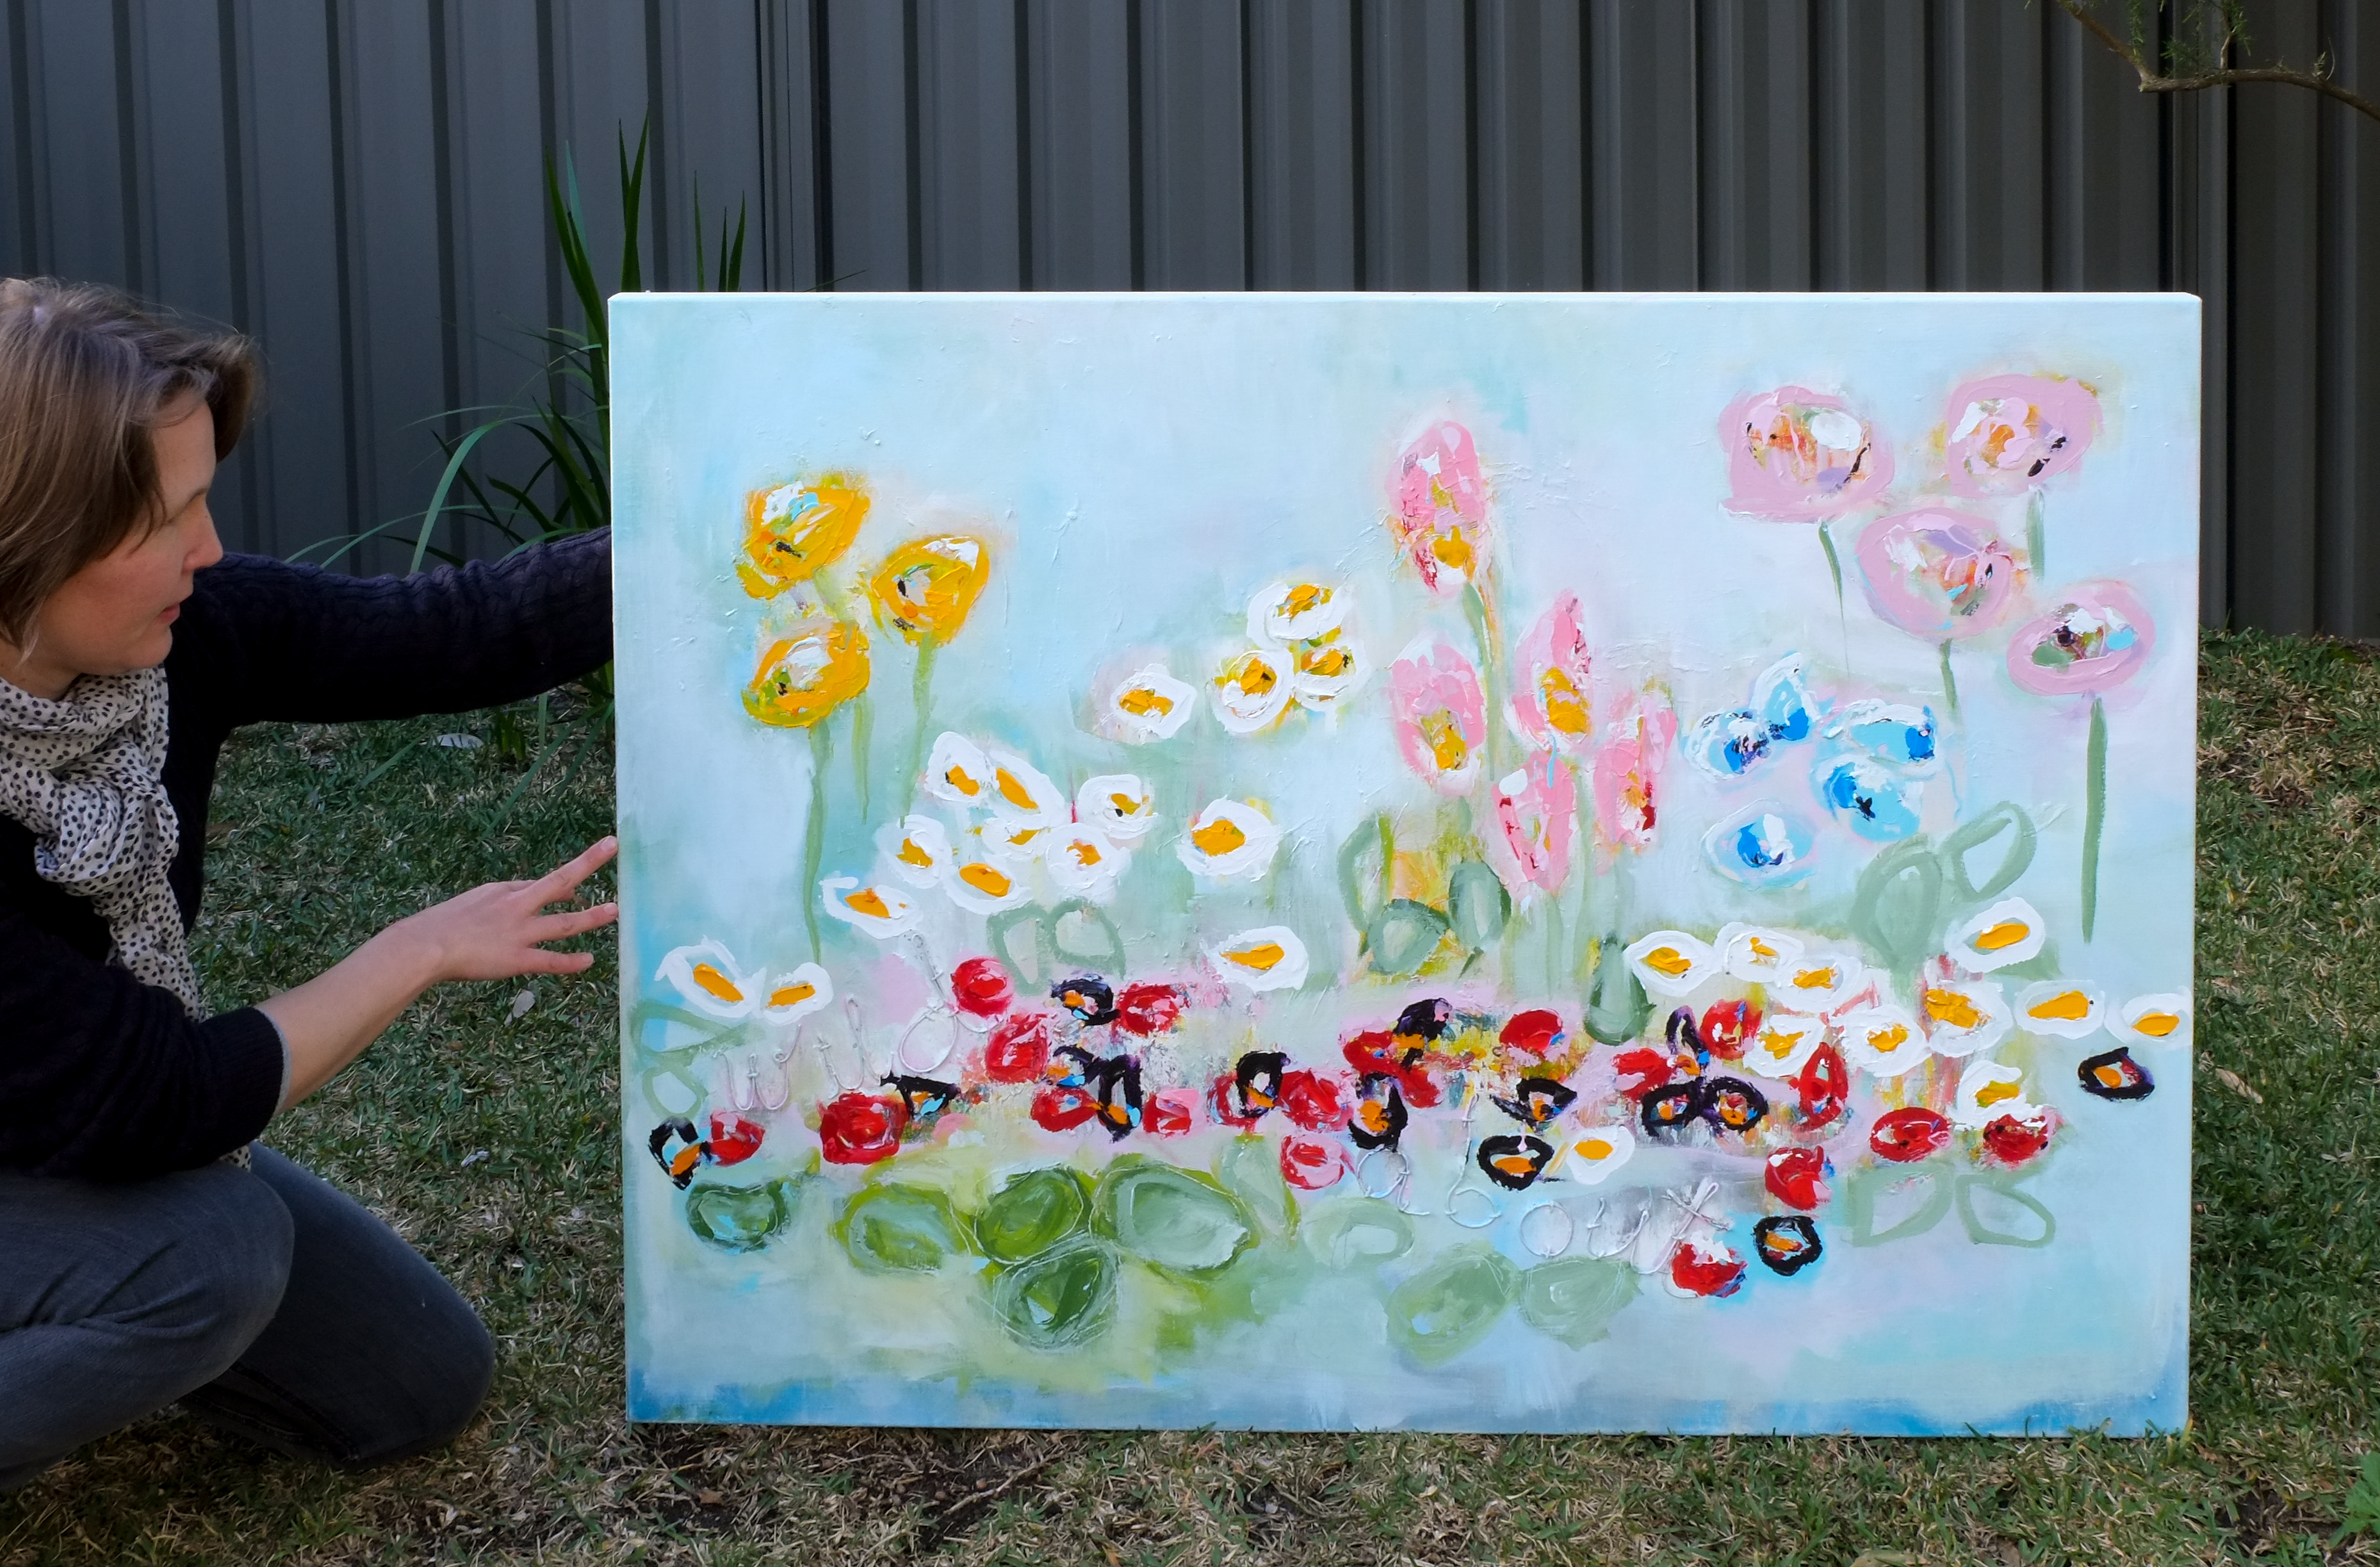 Artist Hela Donela and her painting Wild About Flowers